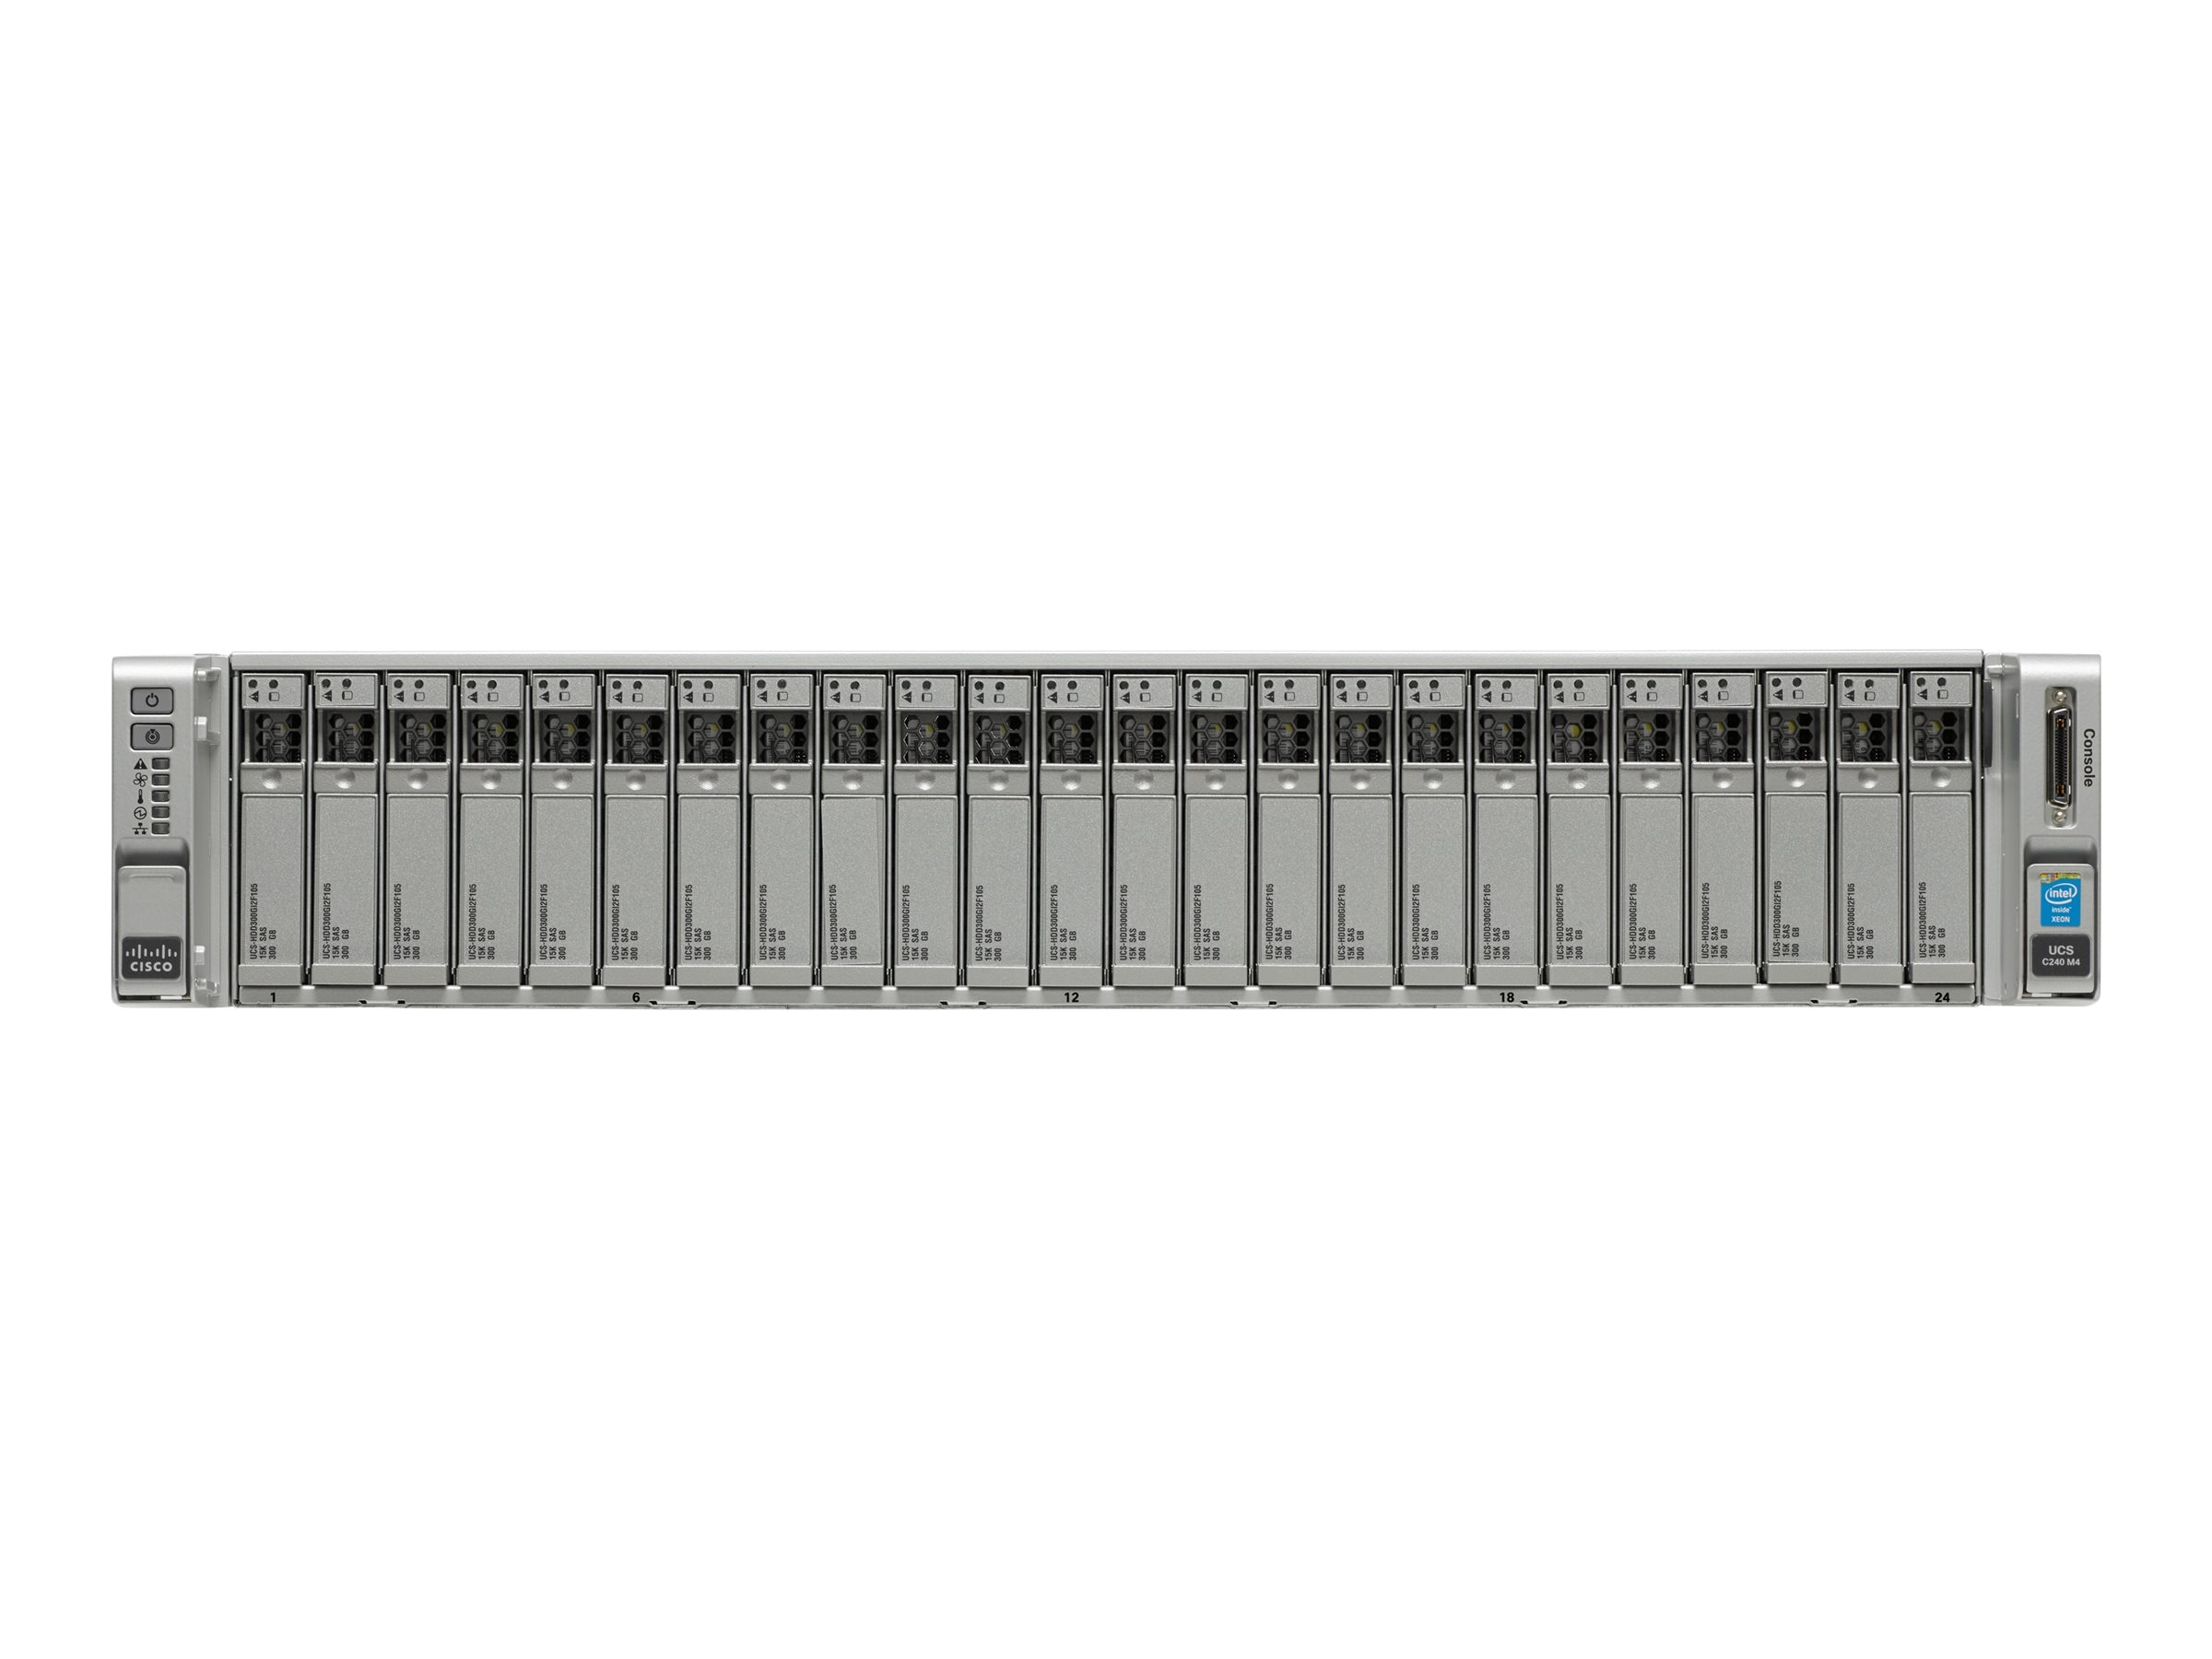 Cisco UCS-SPR-C240M4-BS3 Image 2